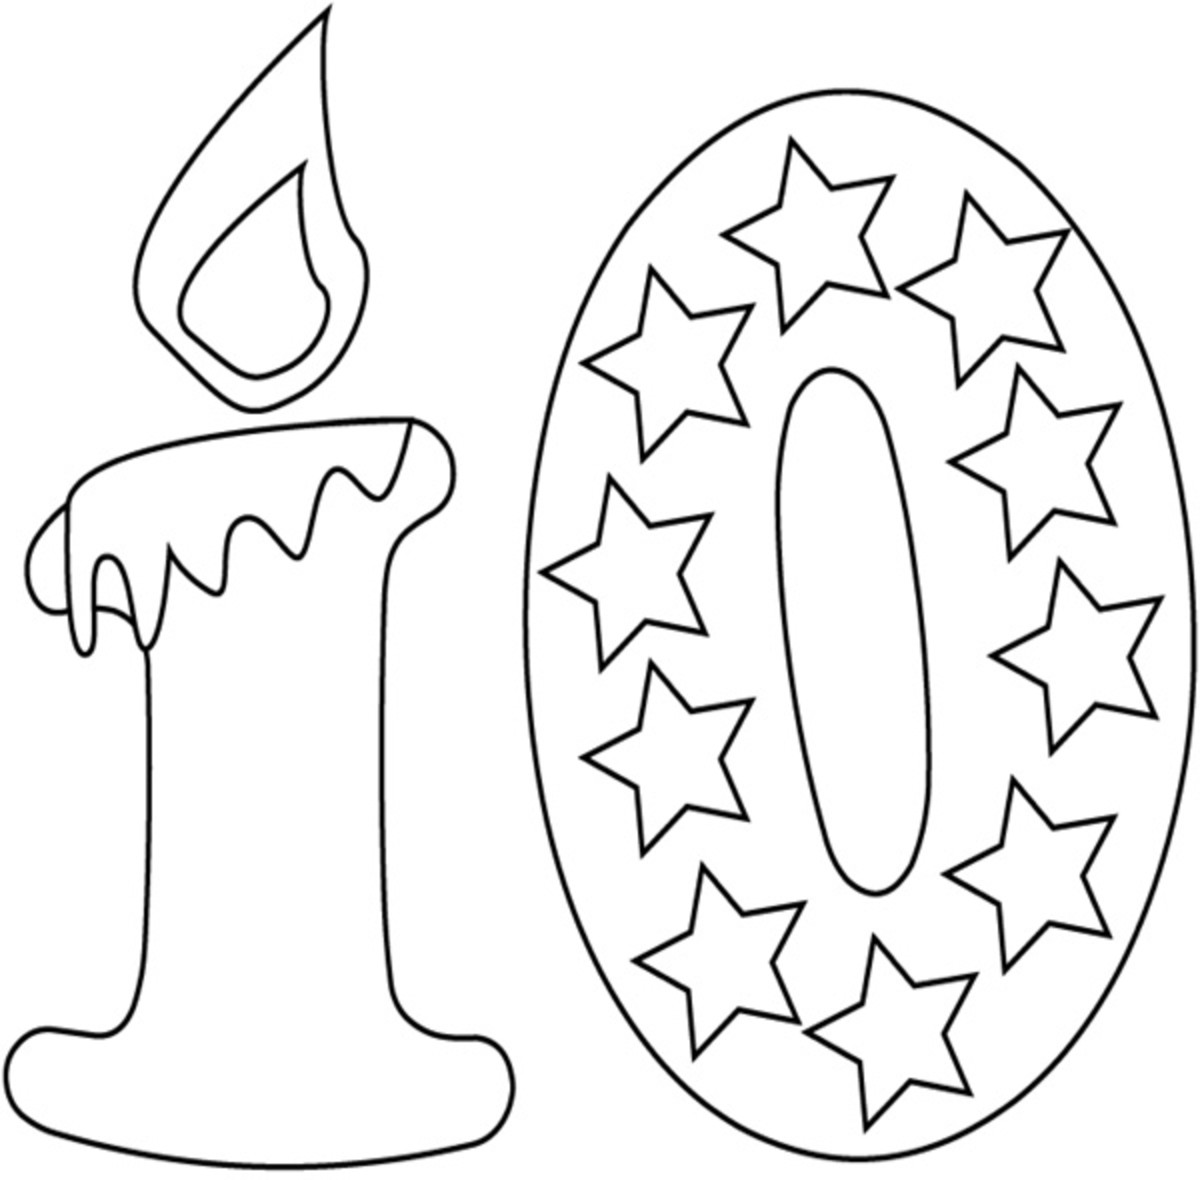 Happy 10th Birthday Coloring Pages Sketch Coloring Page